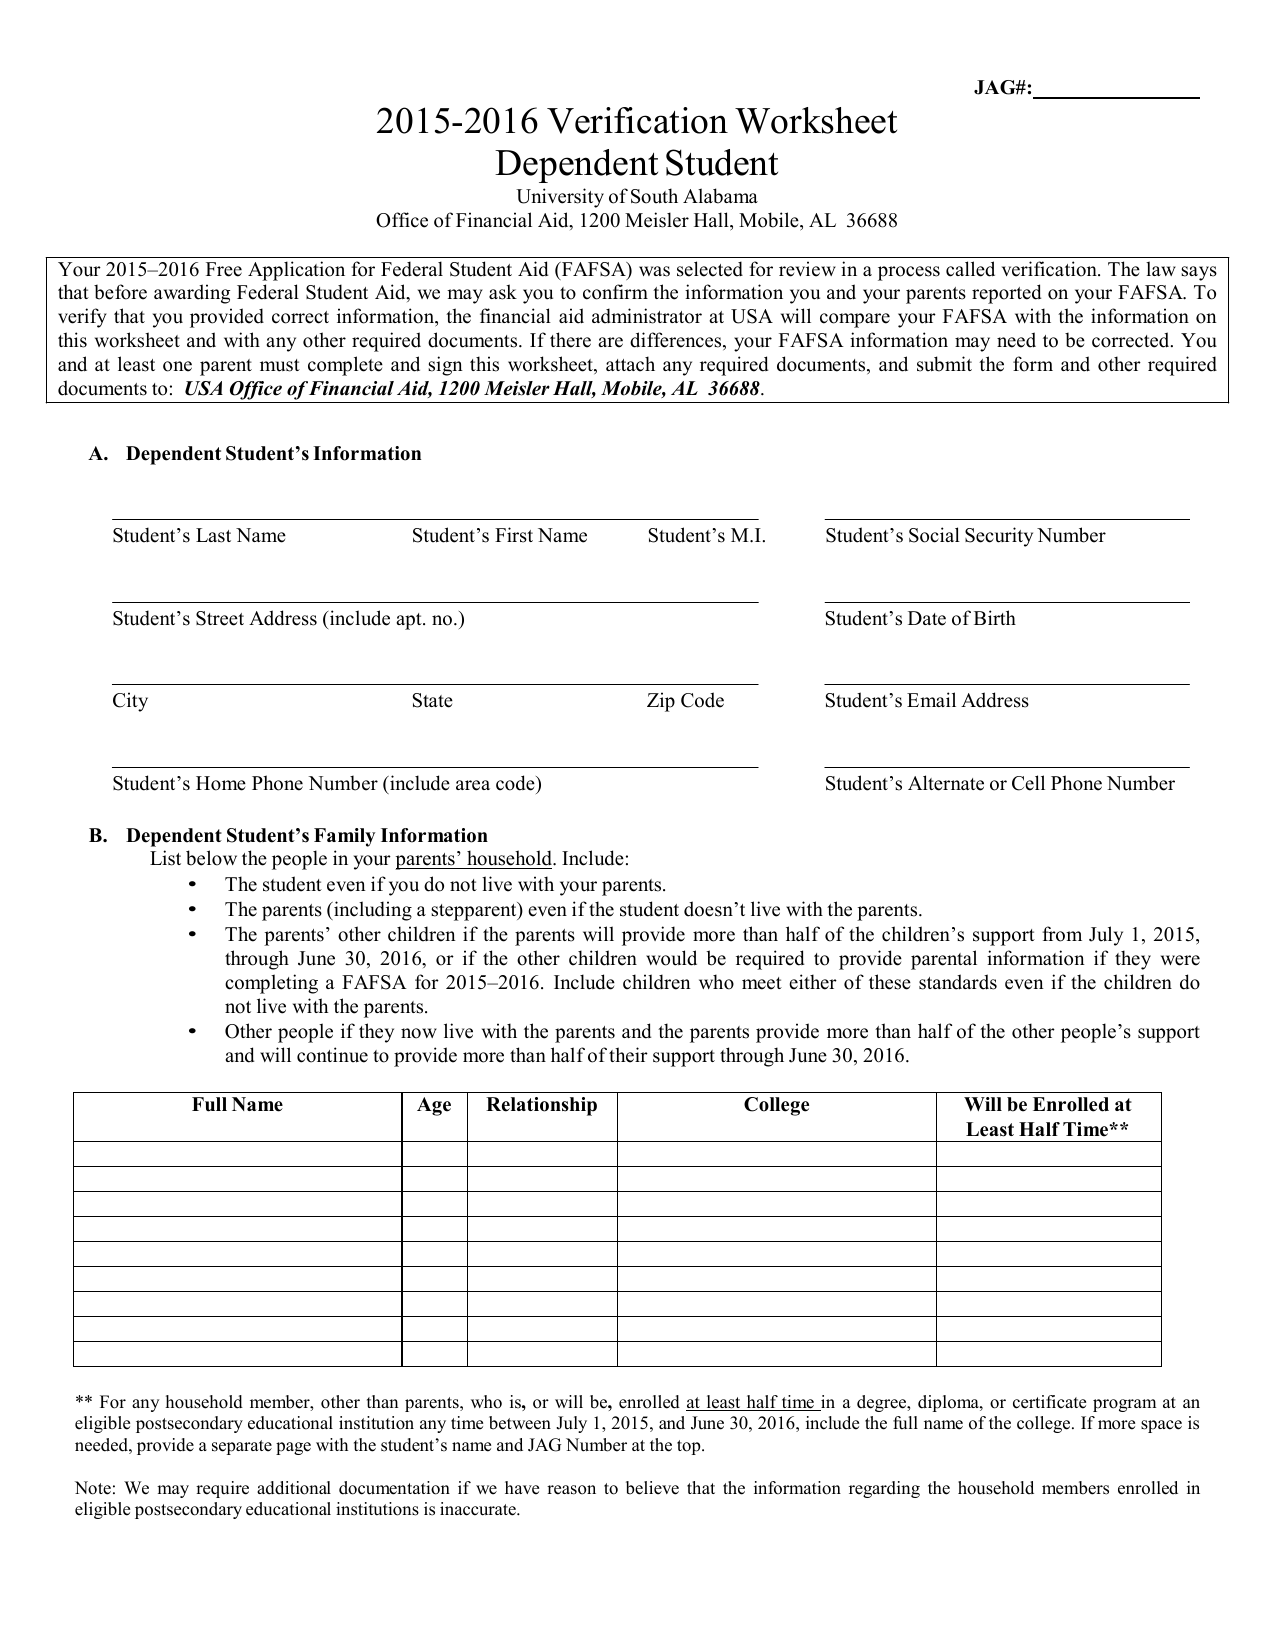 2015-2016 Verification Worksheet Dependent Student